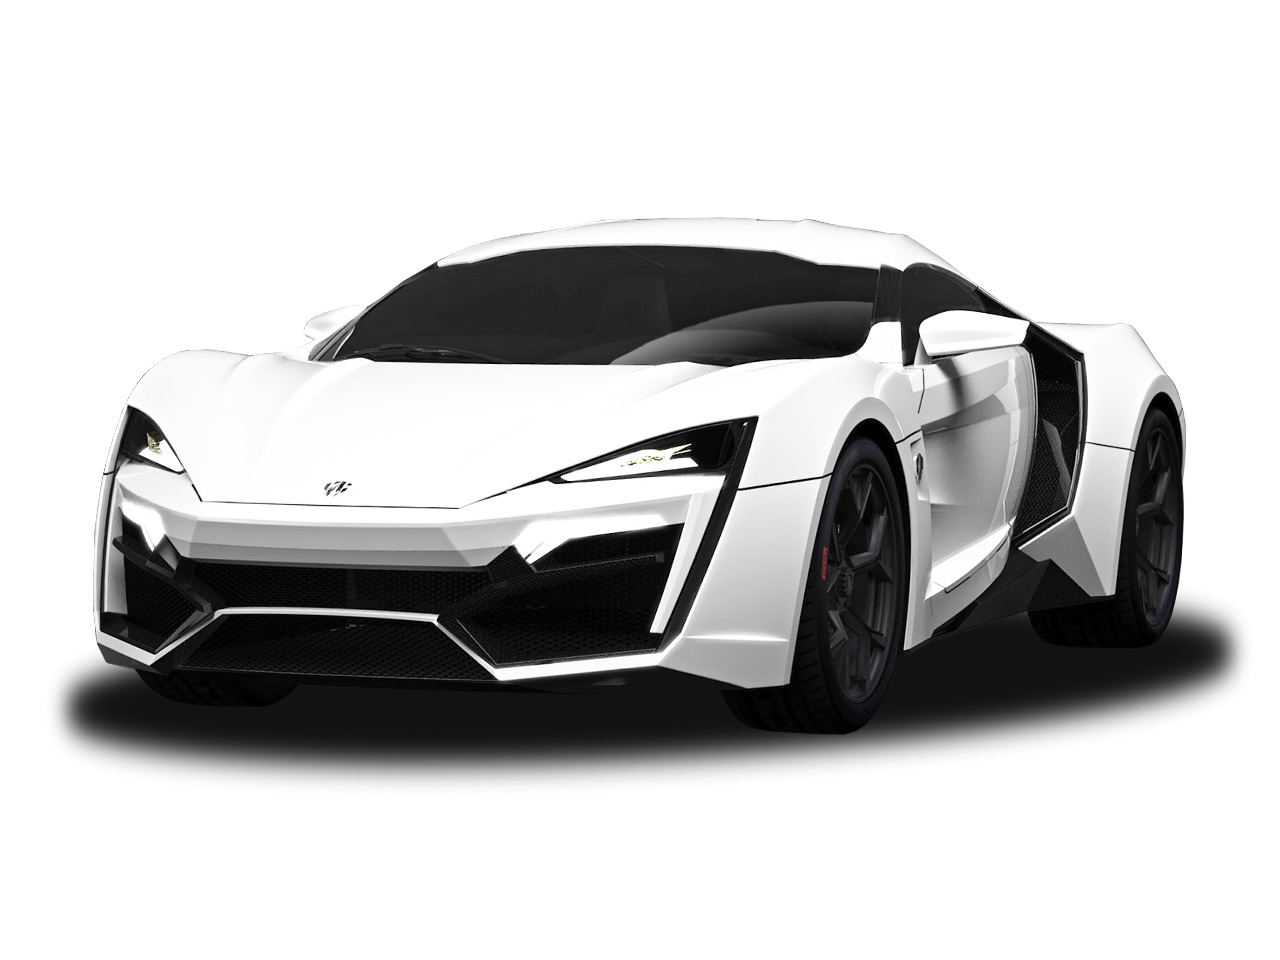 2018 W Motors Lykan Hypersport Prices In Uae Gulf Specs